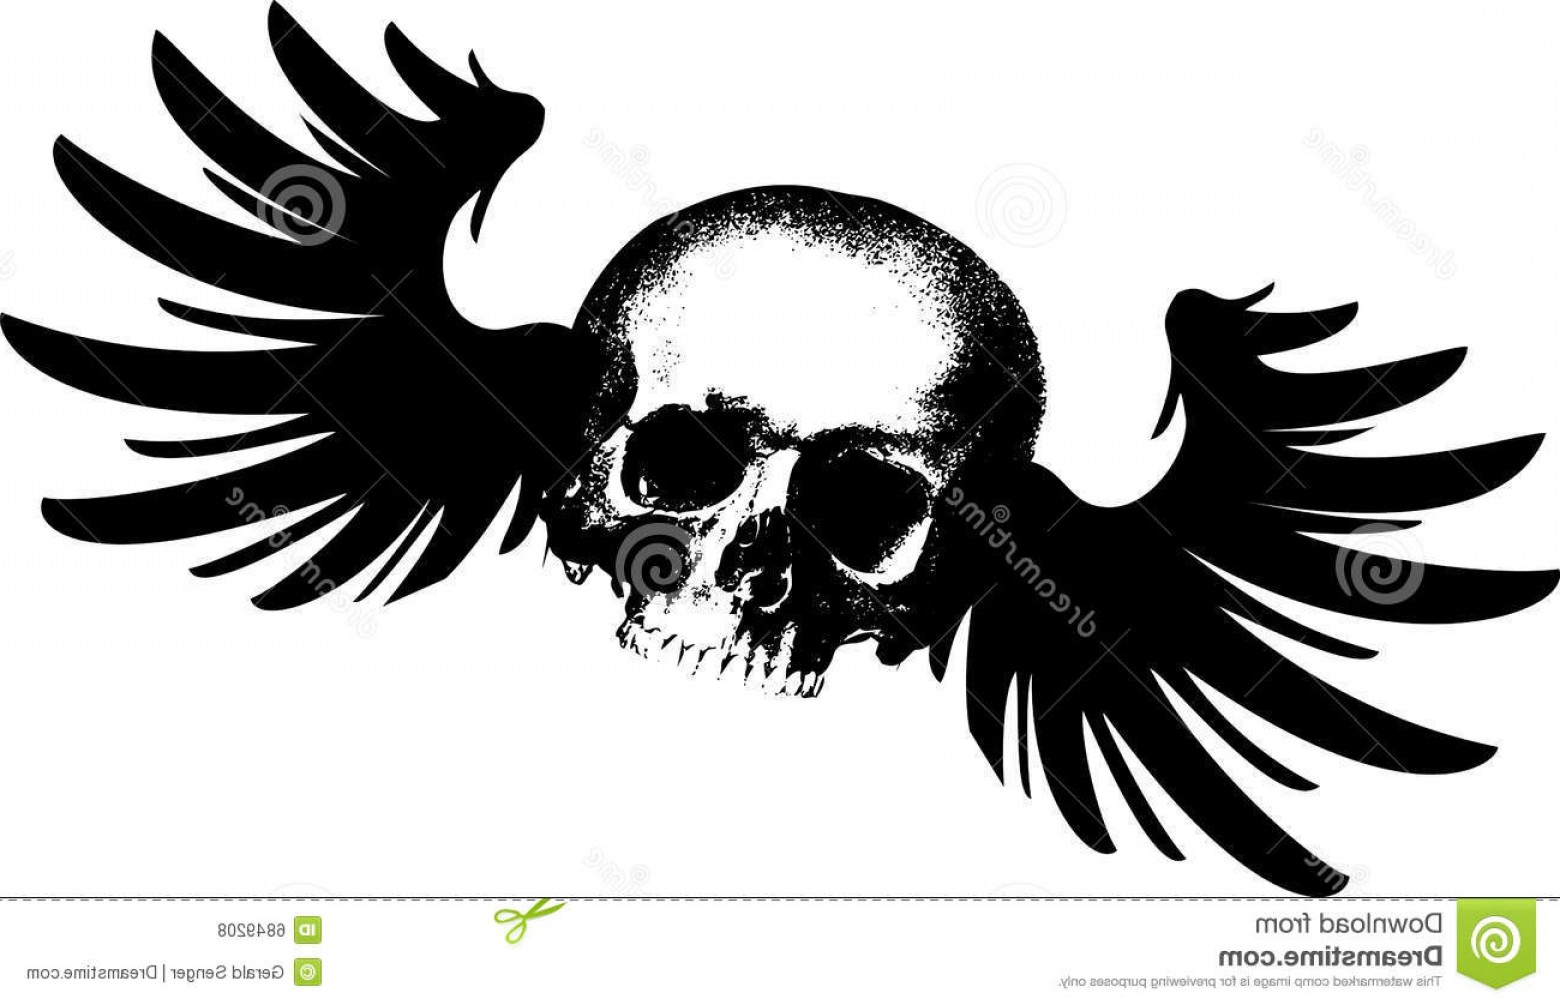 Flying Skull Vector: Royalty Free Stock Photos Flying Skull Image